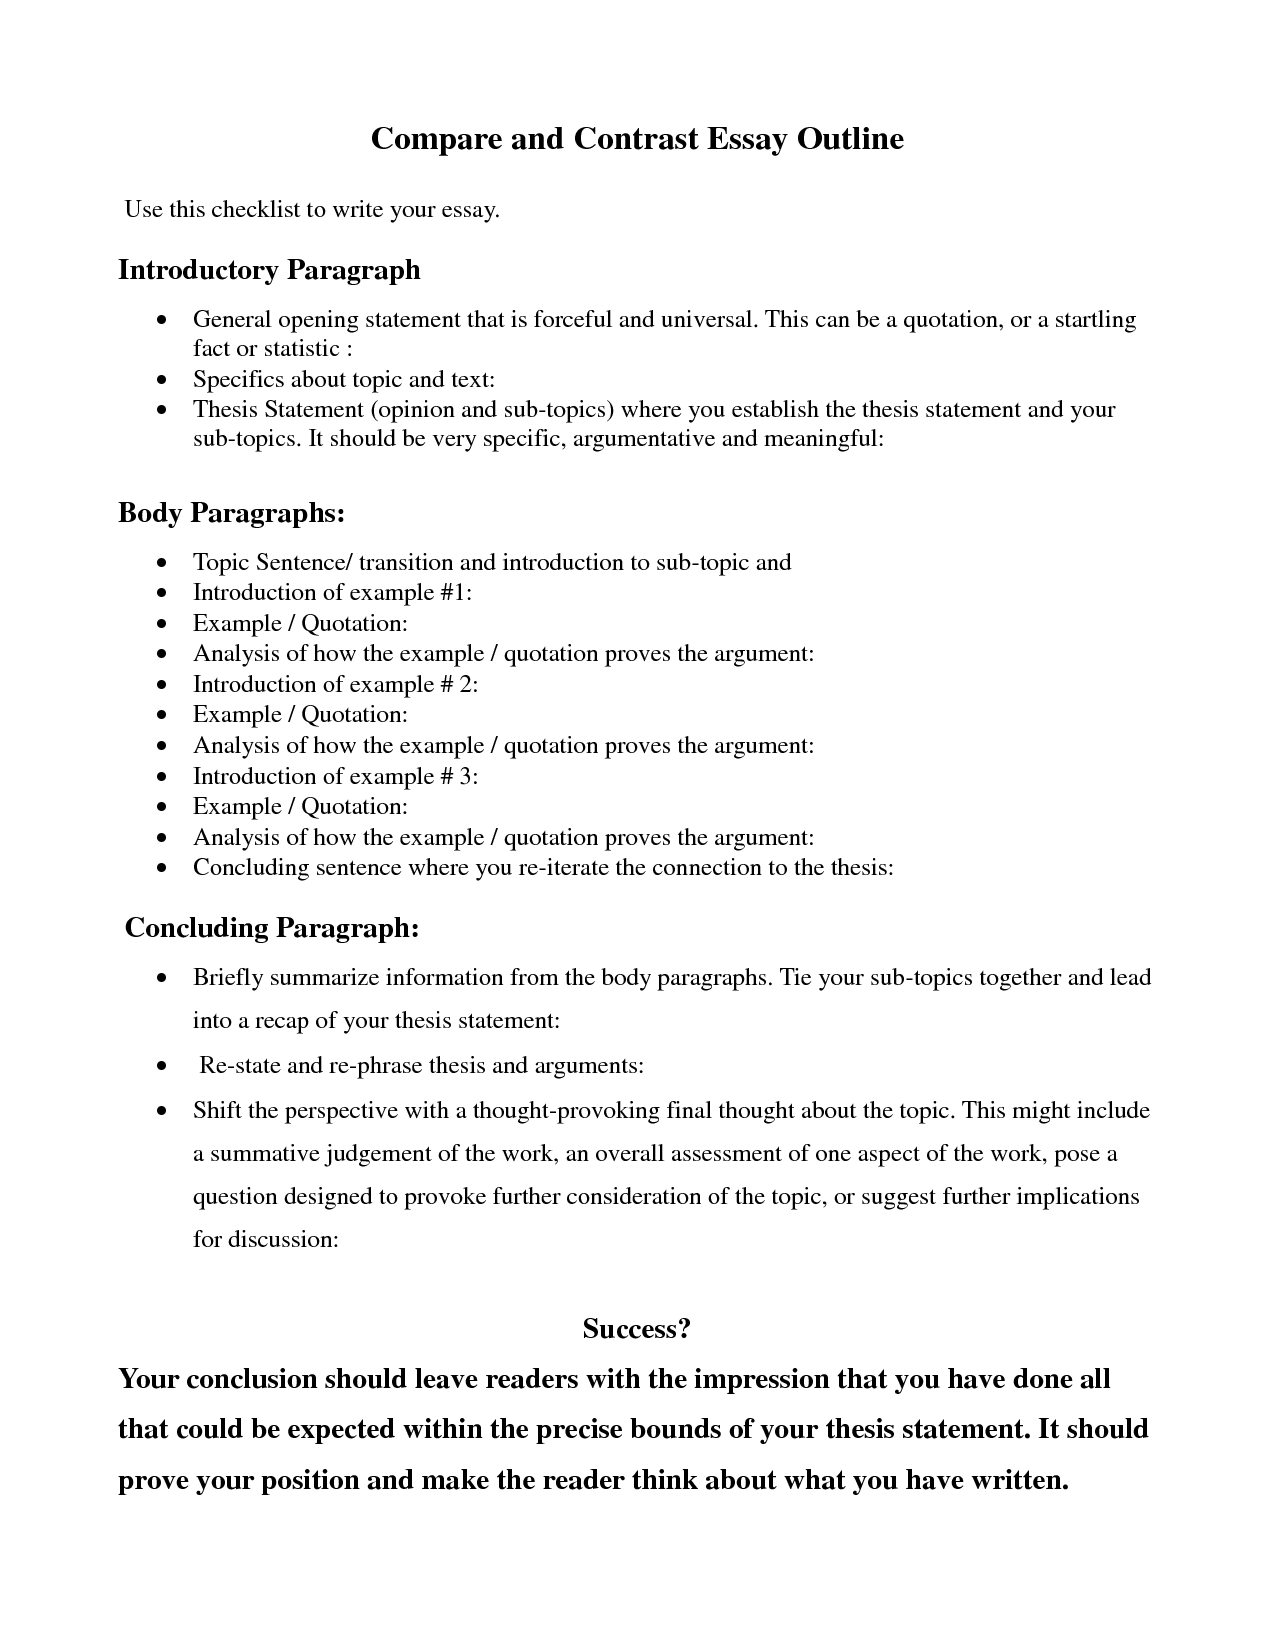 001 Essay Example Comparison And Contrast Examples Frightening Free Compare Pdf College Full